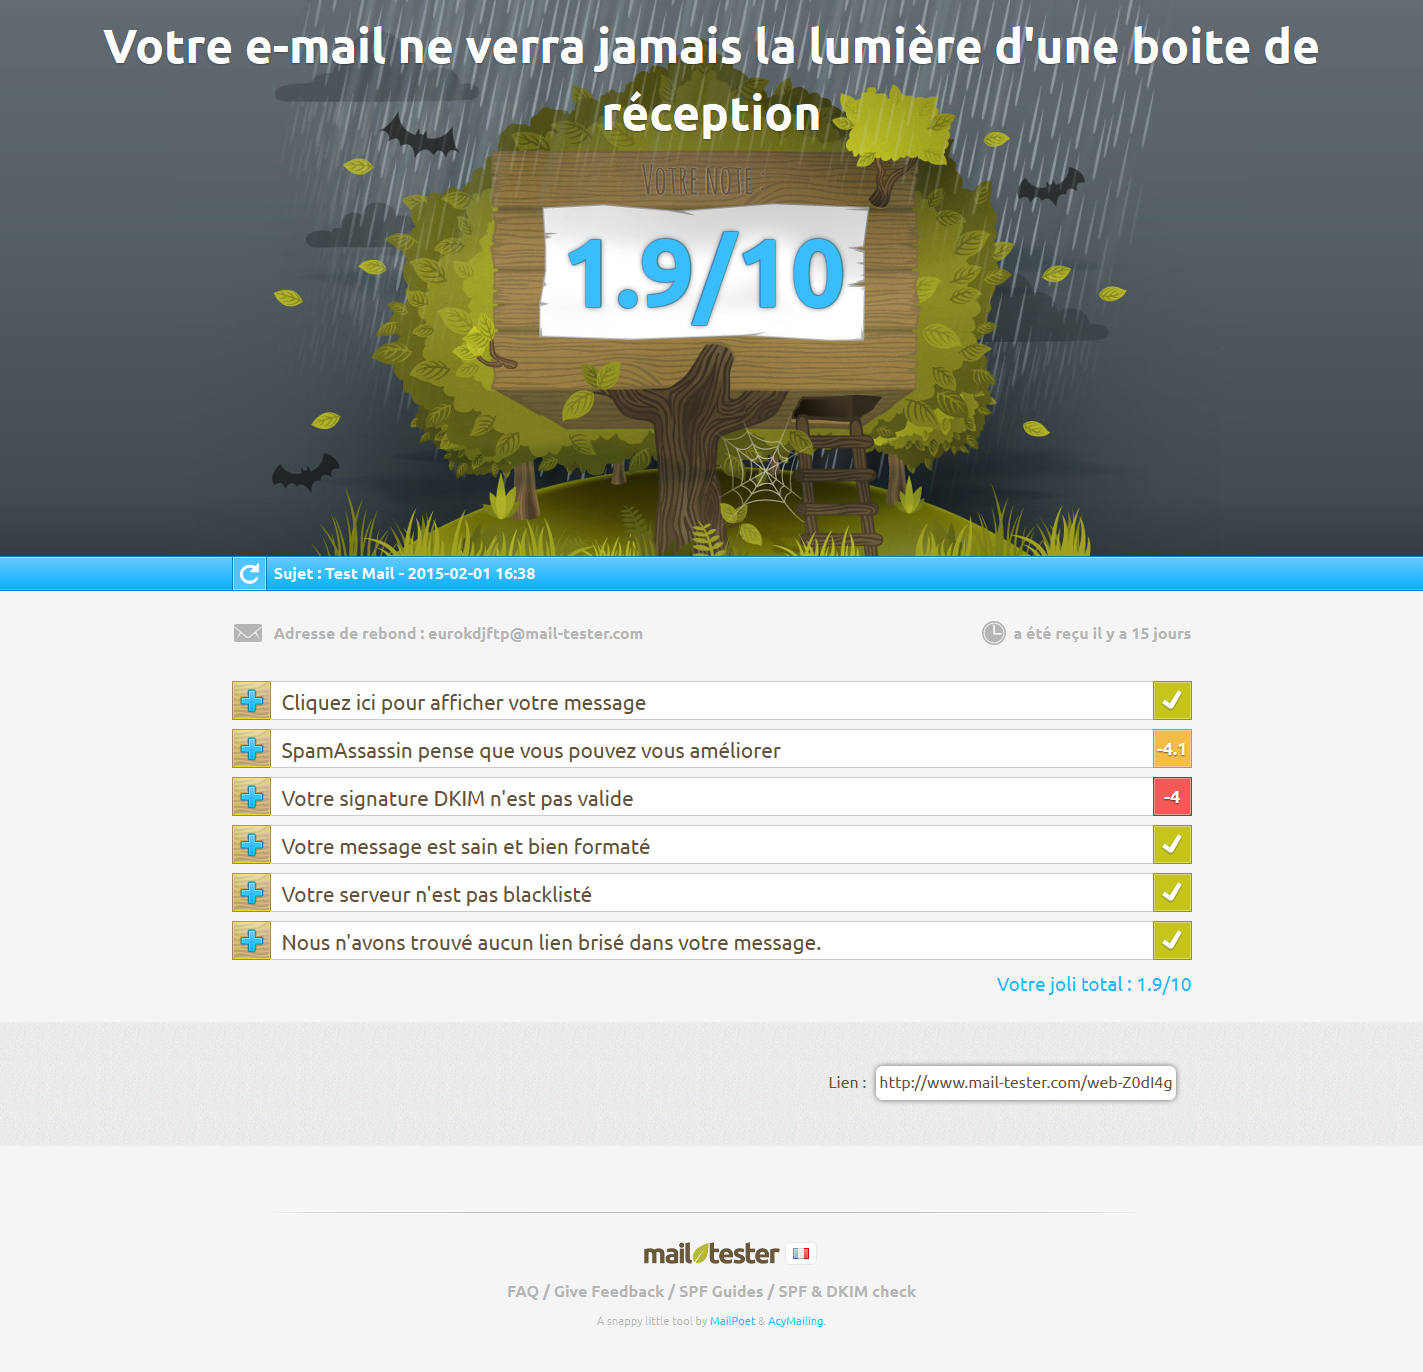 Résultat_du_Test_de_Spam_by_mail-tester.com_-_2015-02-16_23.33.47